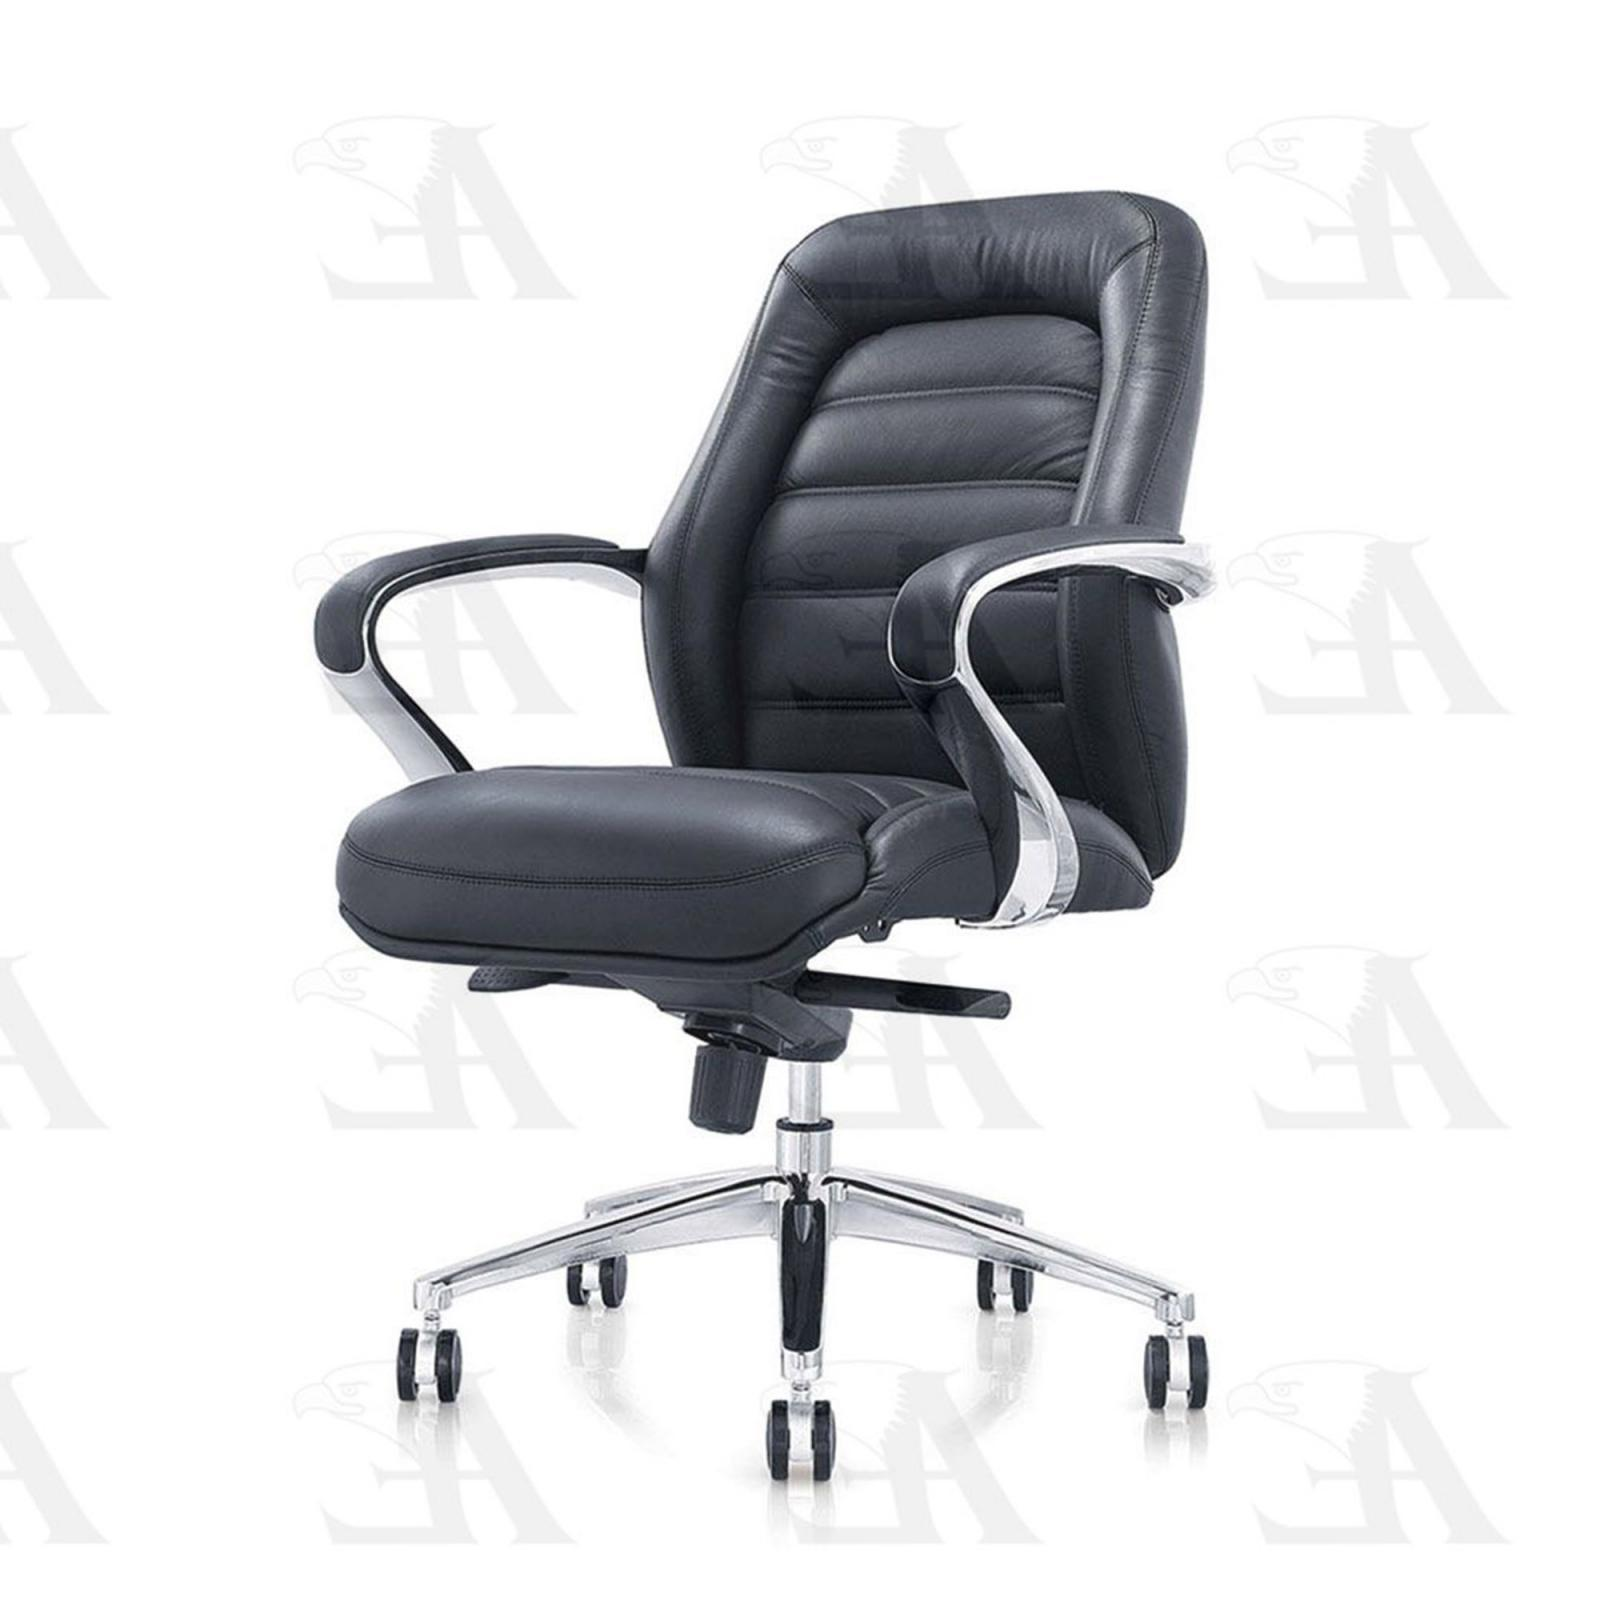 desk chair offerup 4 moms high office wheels for sale only 3 left at 60